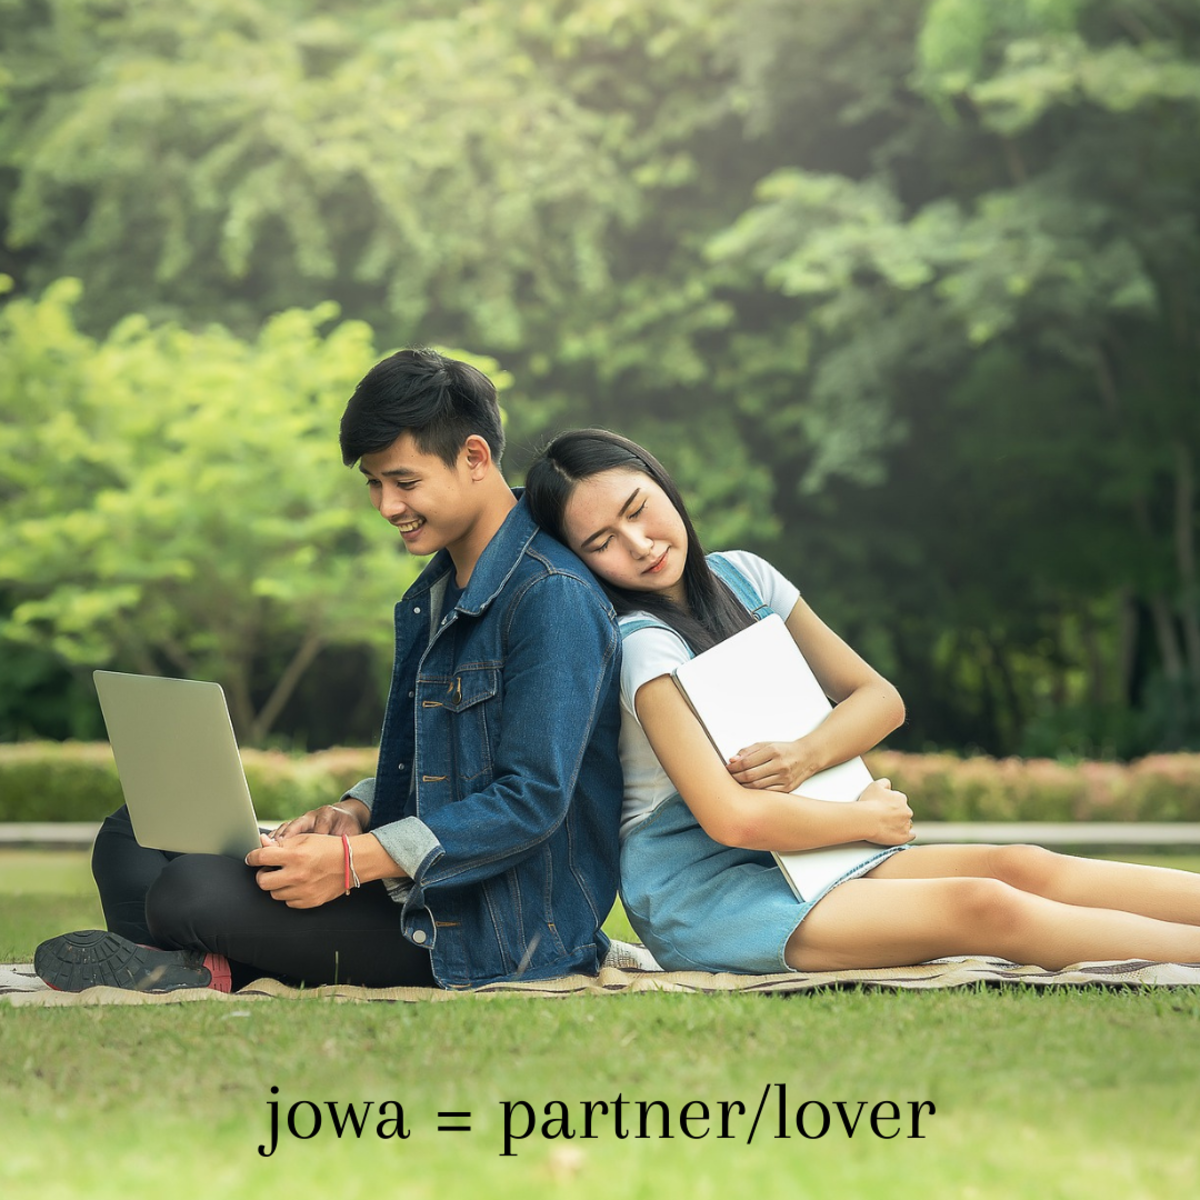 """Your partner, lover, or girlfriend/boyfriend is often referred to as your """"jowa"""" in Tagalog."""